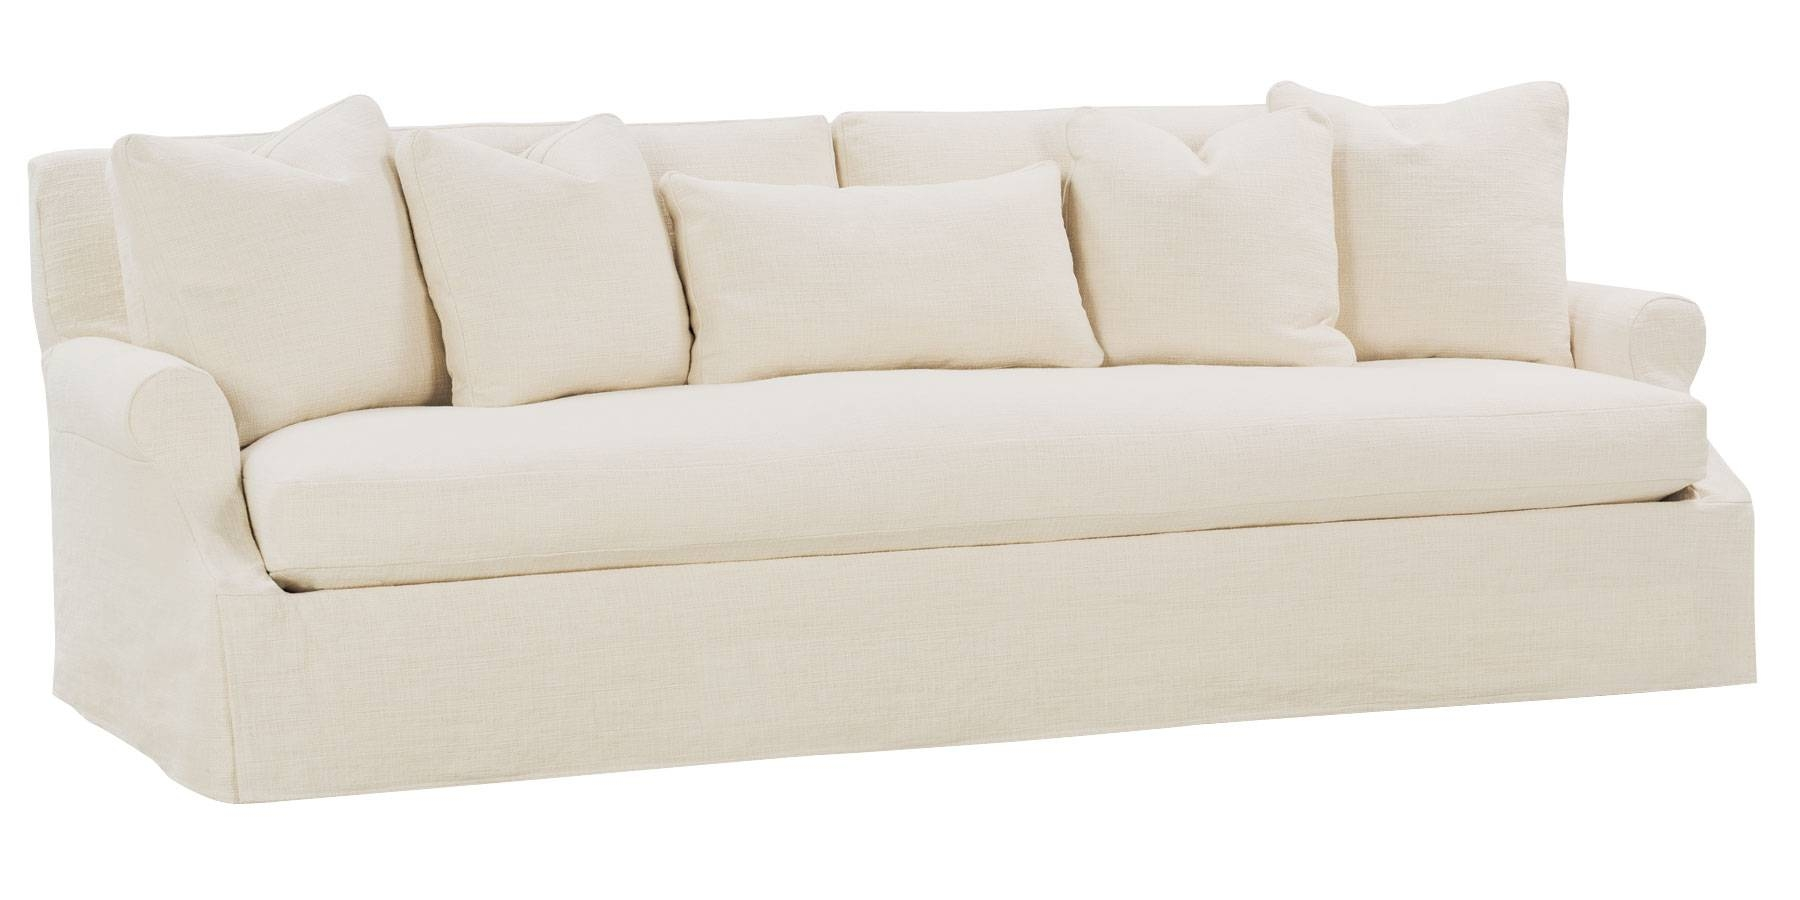 Comfortable Slipcovered Furniture, Slipcover Sofas, Couches regarding Slipcovers Sofas (Image 4 of 30)